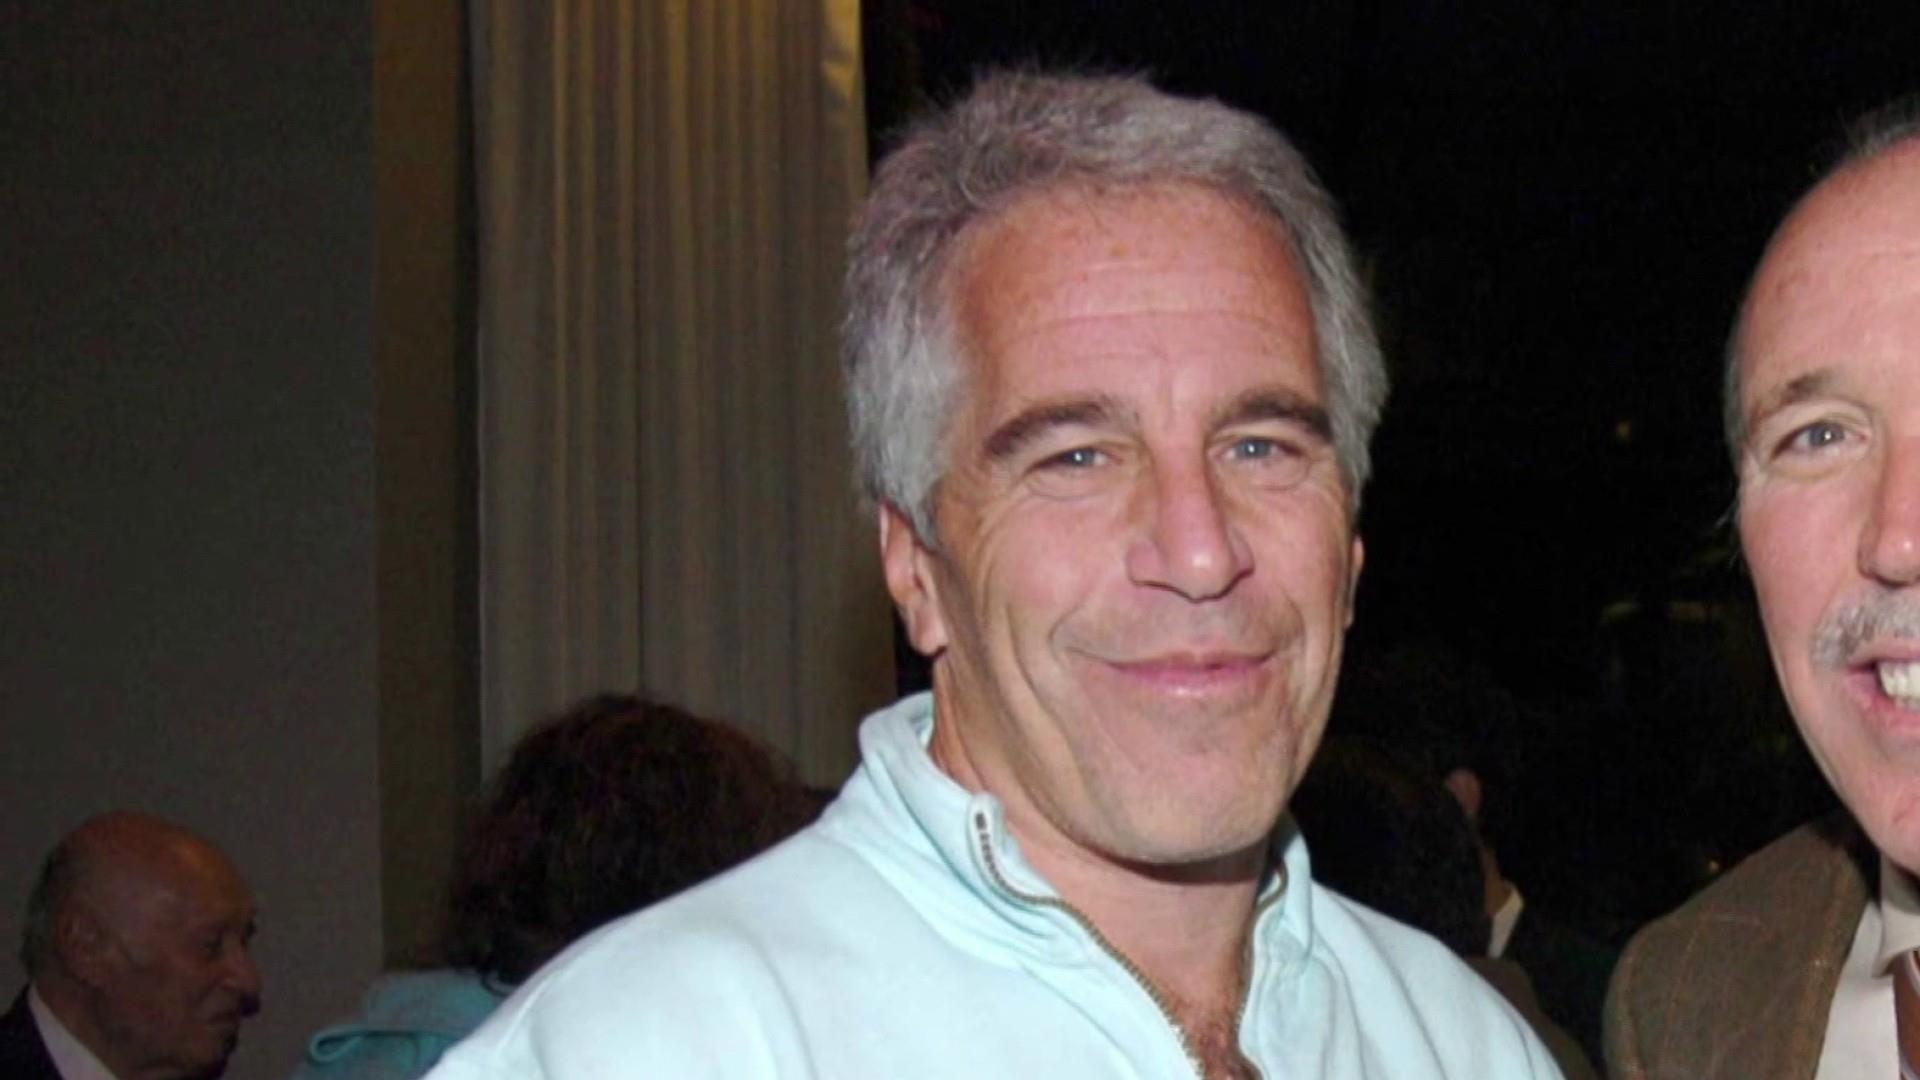 'A clear failure': Epstein was left alone for hours